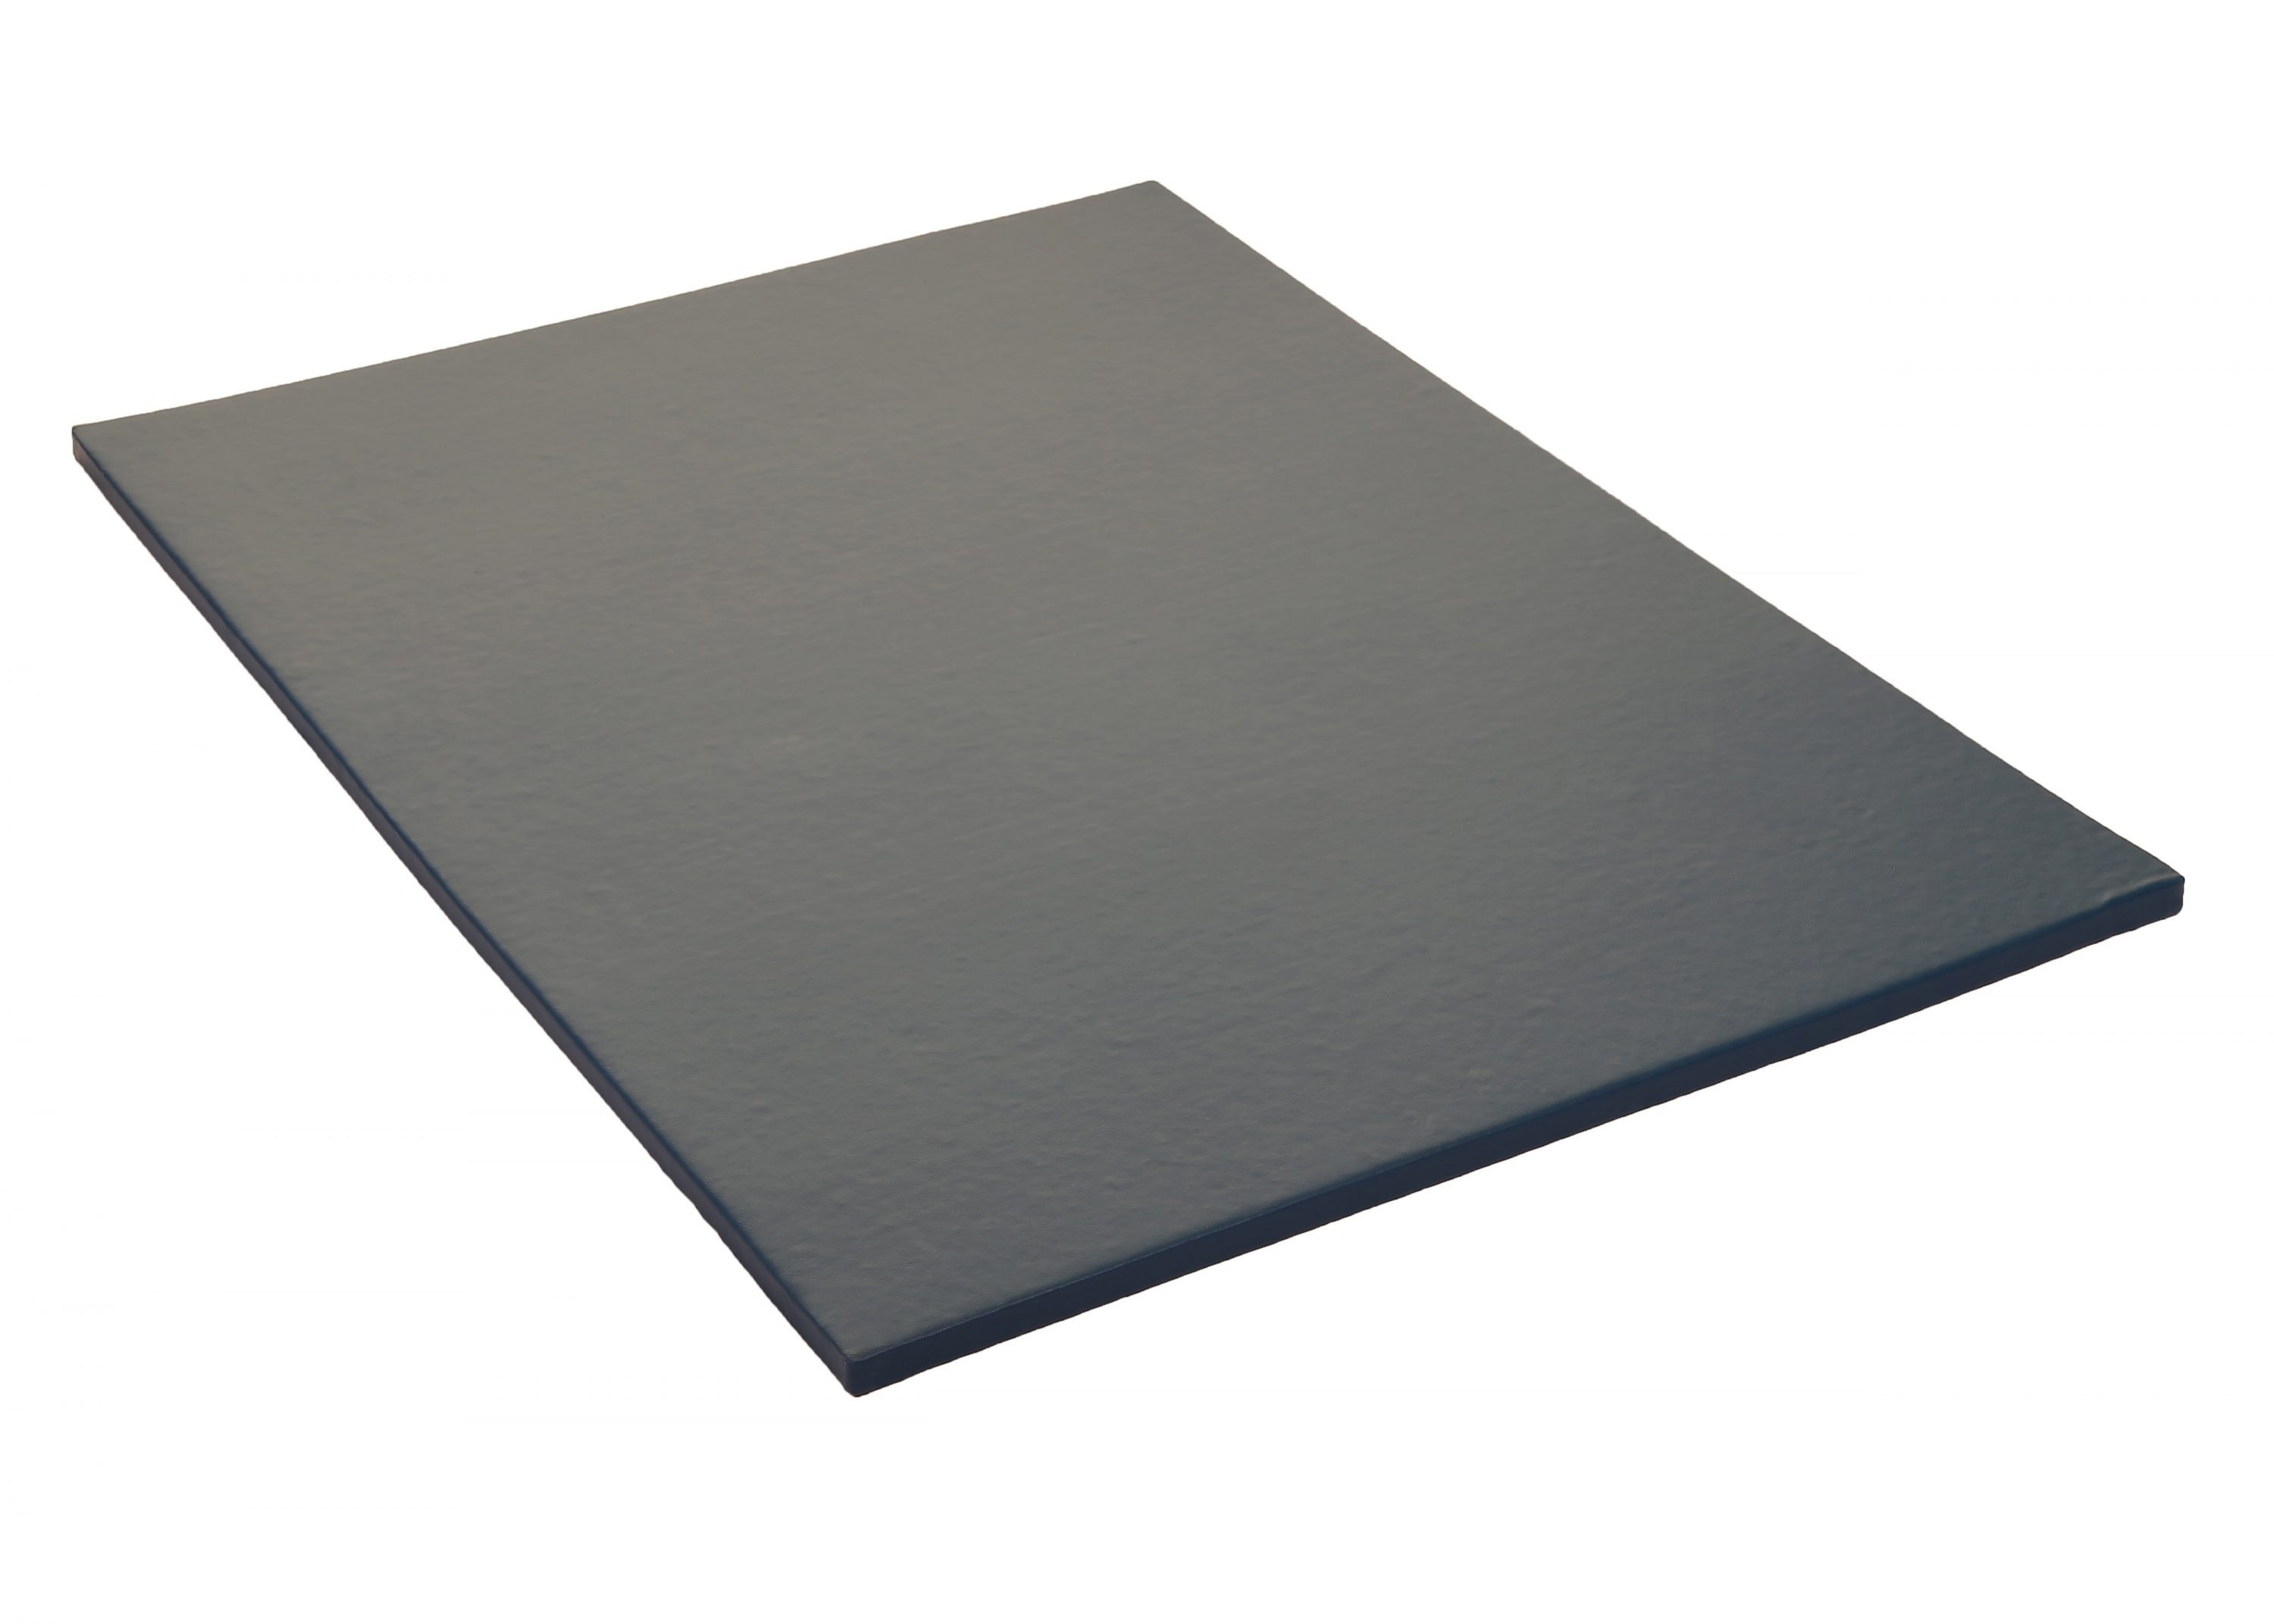 Promat Multipurpose Gym Mat